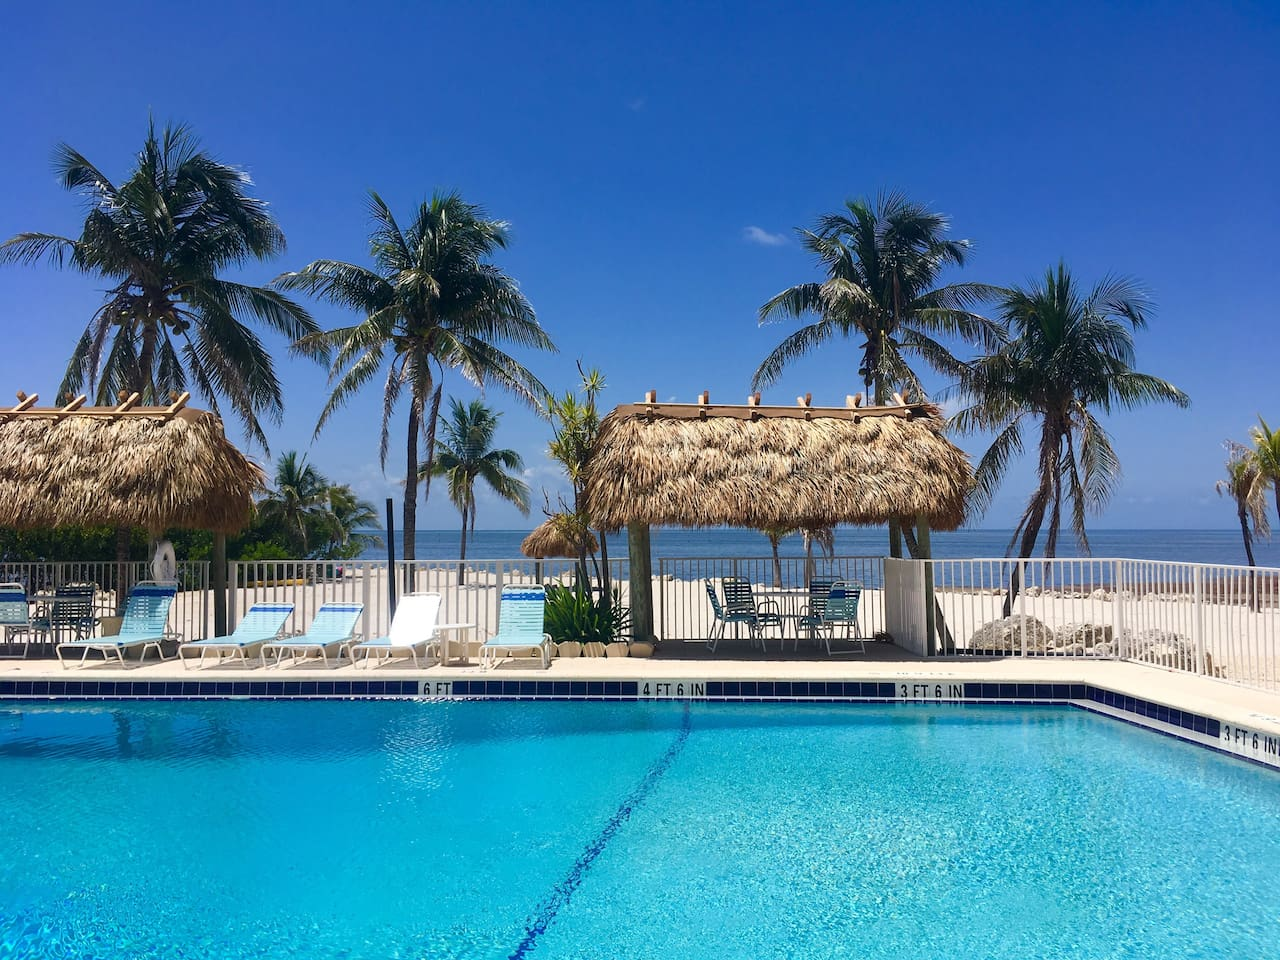 Oceanfront pool with tiki huts for shade